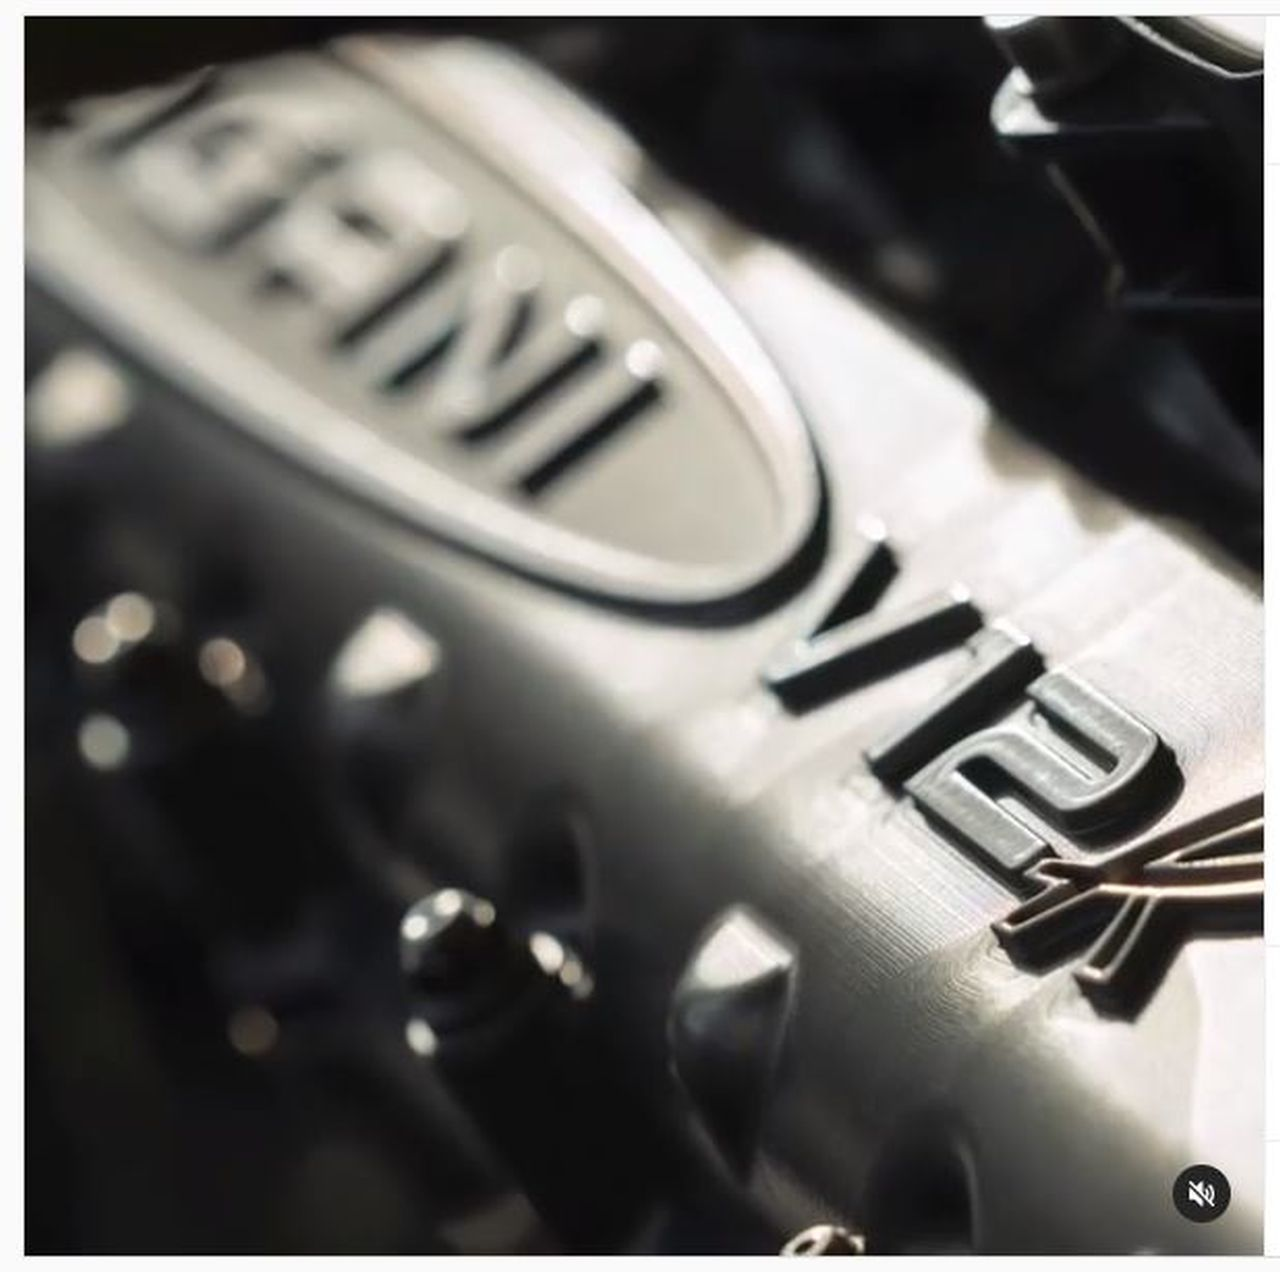 Pagani Fires Up The Huayra R S Screaming V12 Engine The Supercar Blog